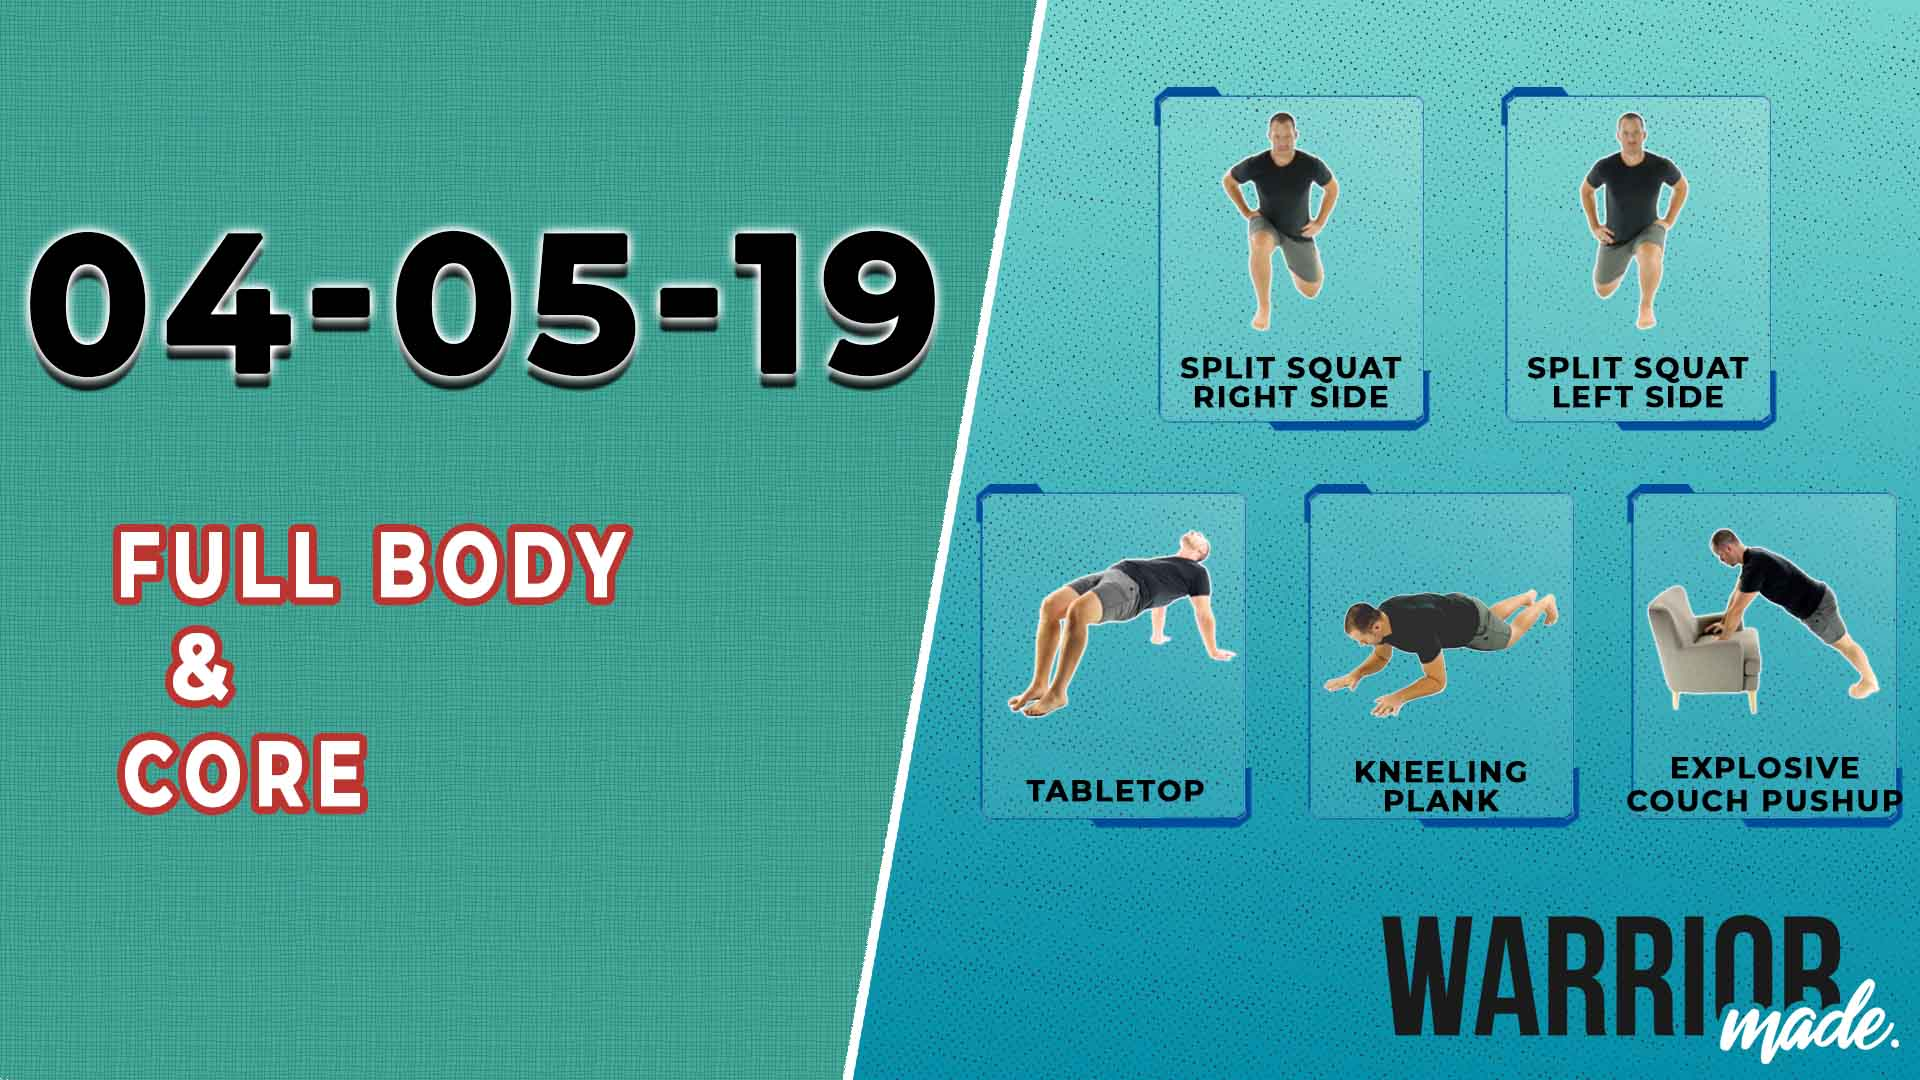 workouts-04-05-19